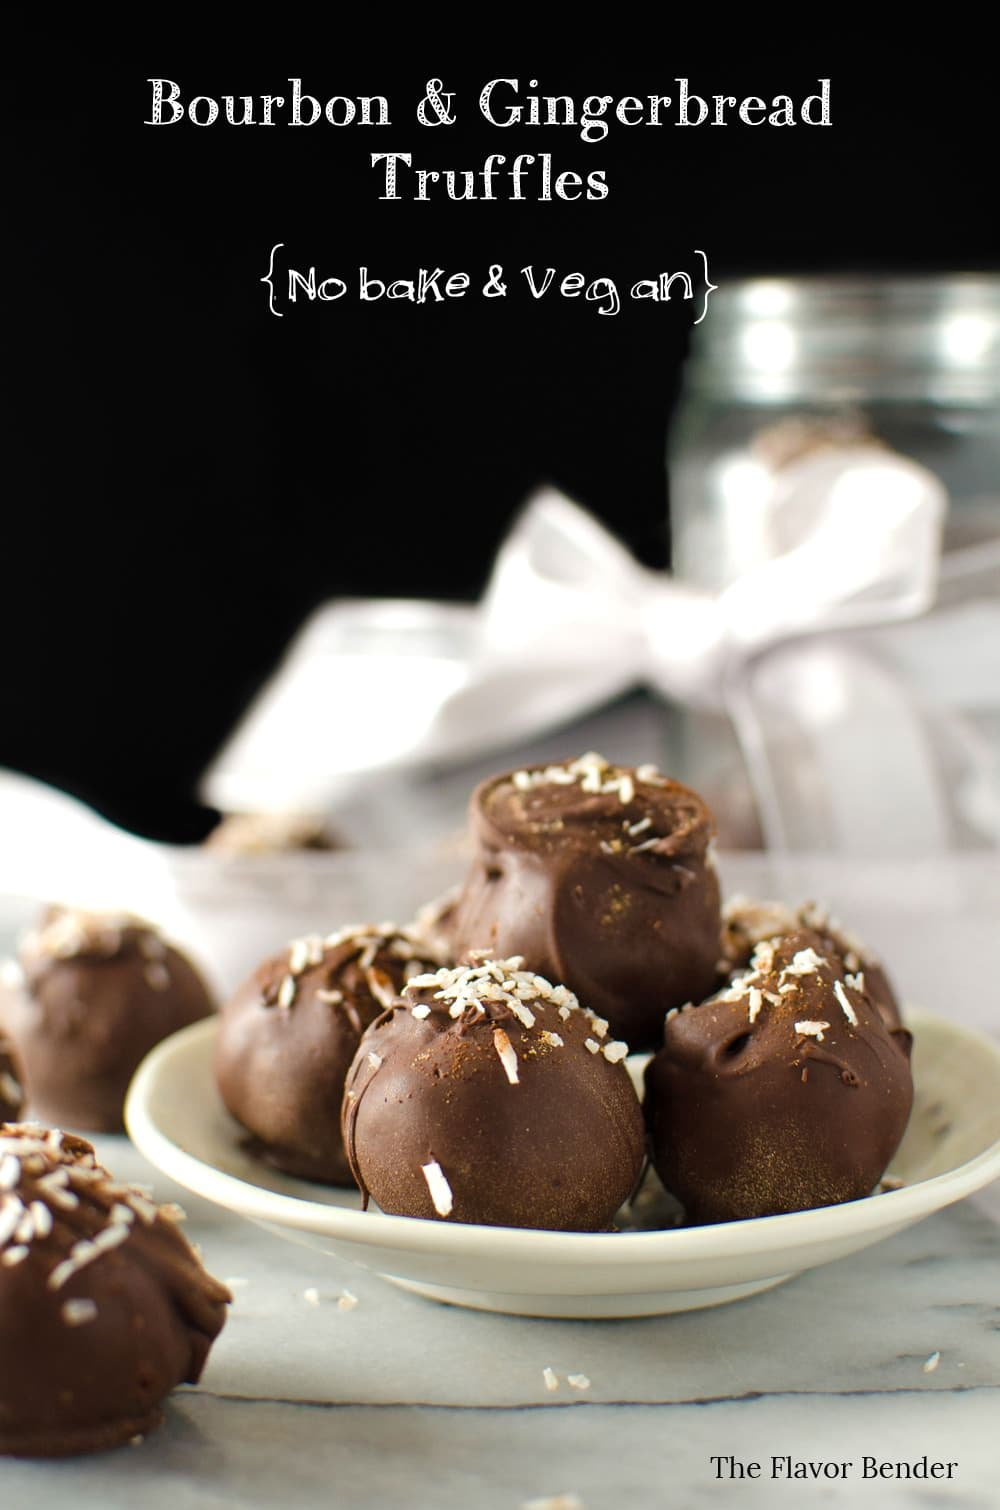 Bourbon Gingerbread Truffles covered in chocolate - These are delicious and Vegan and No-bake! You can make these gluten free, with GF gingersnap cookies.